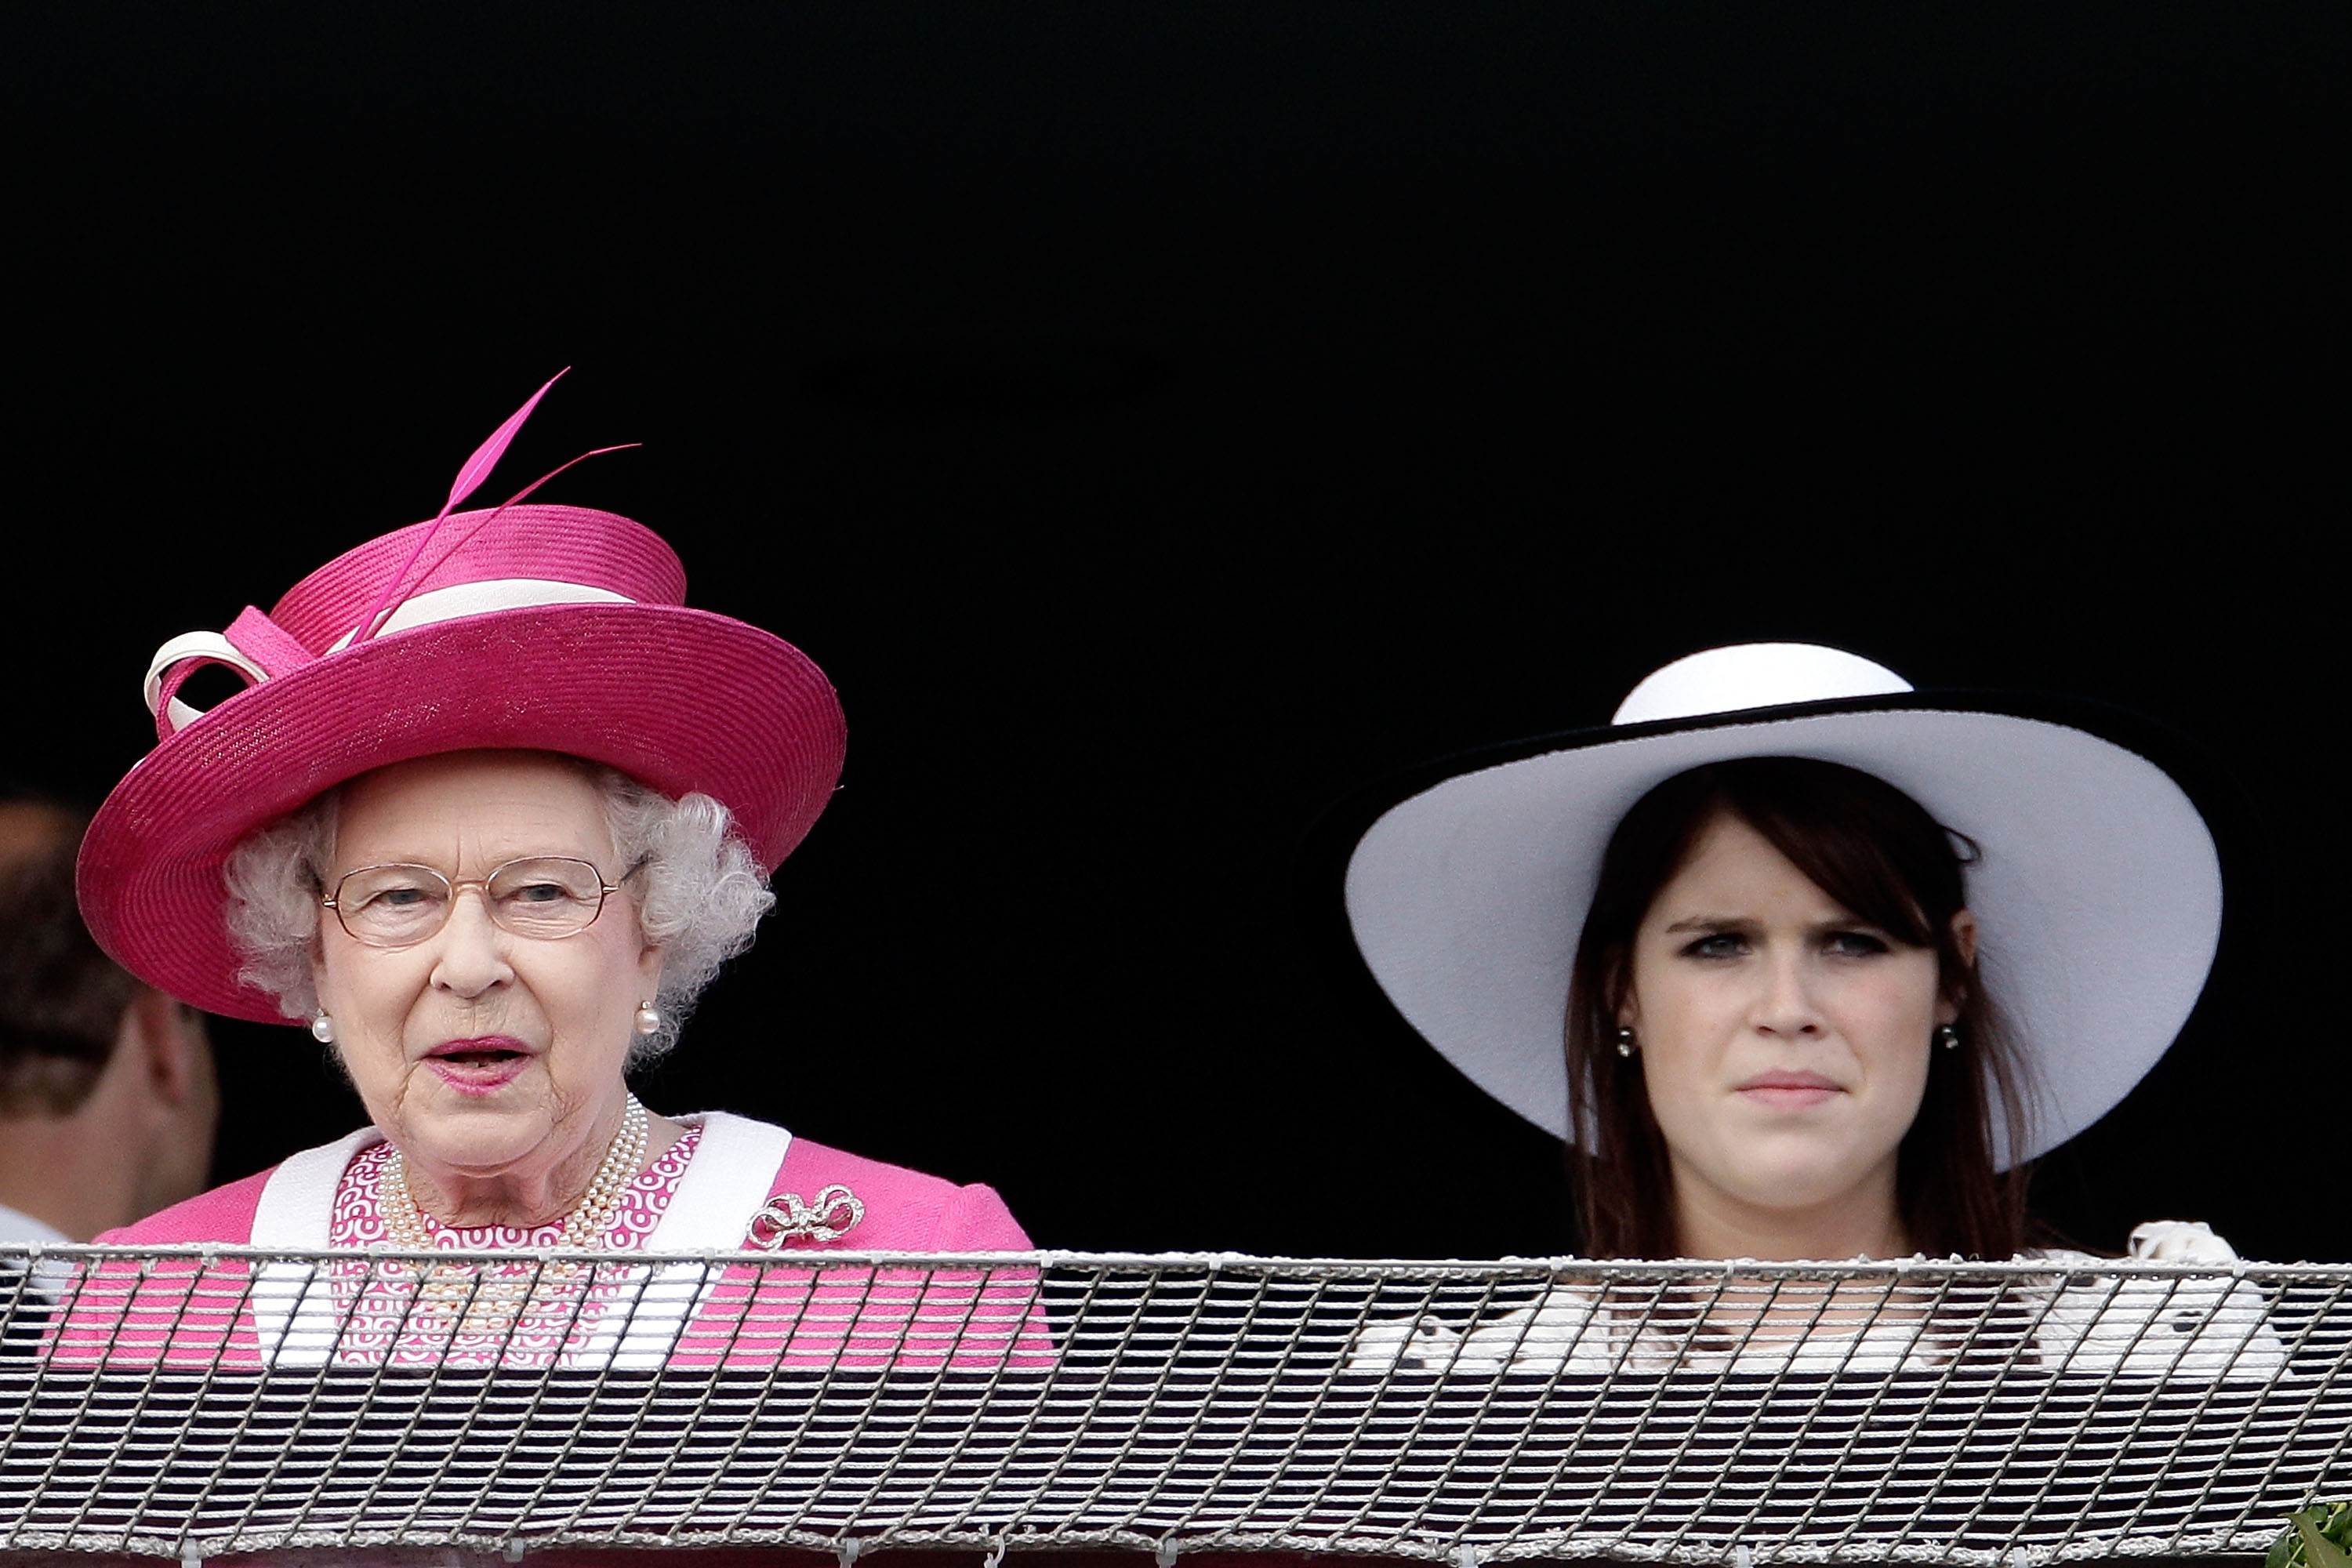 Queen Elizabeth II and Princess Eugenie react as the Queen's horse Carlton House comes in third in the Epsom Derby at Epsom Downs racecourse on June 4, 2011 in Epsom, England. Carlton Hall had been the Bookmakers favourite to win the Derby, but came in third place, with Pour Moi winning.